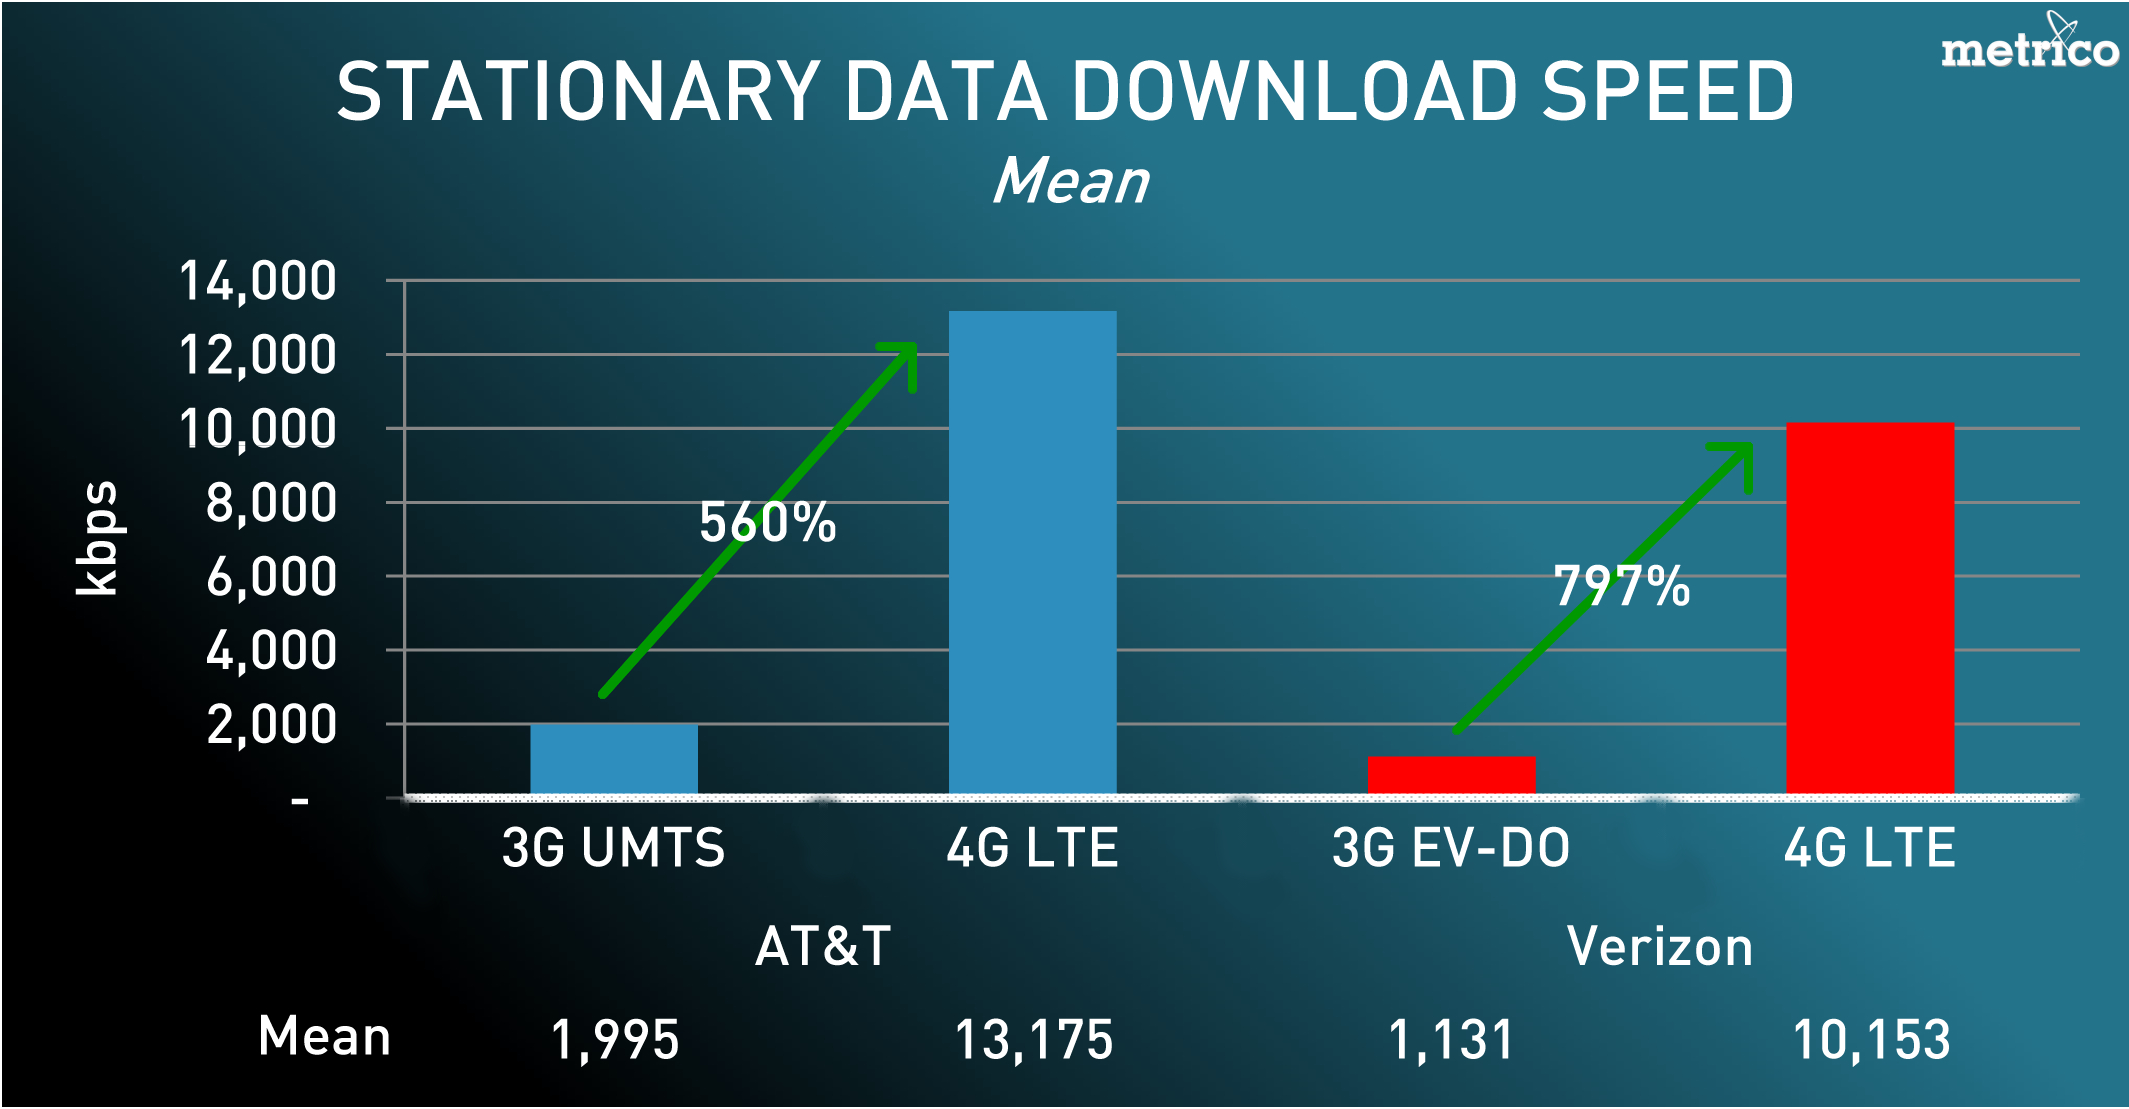 AT\u0026T 4G LTE Posts Higher Average Speeds than Verizon - Tested